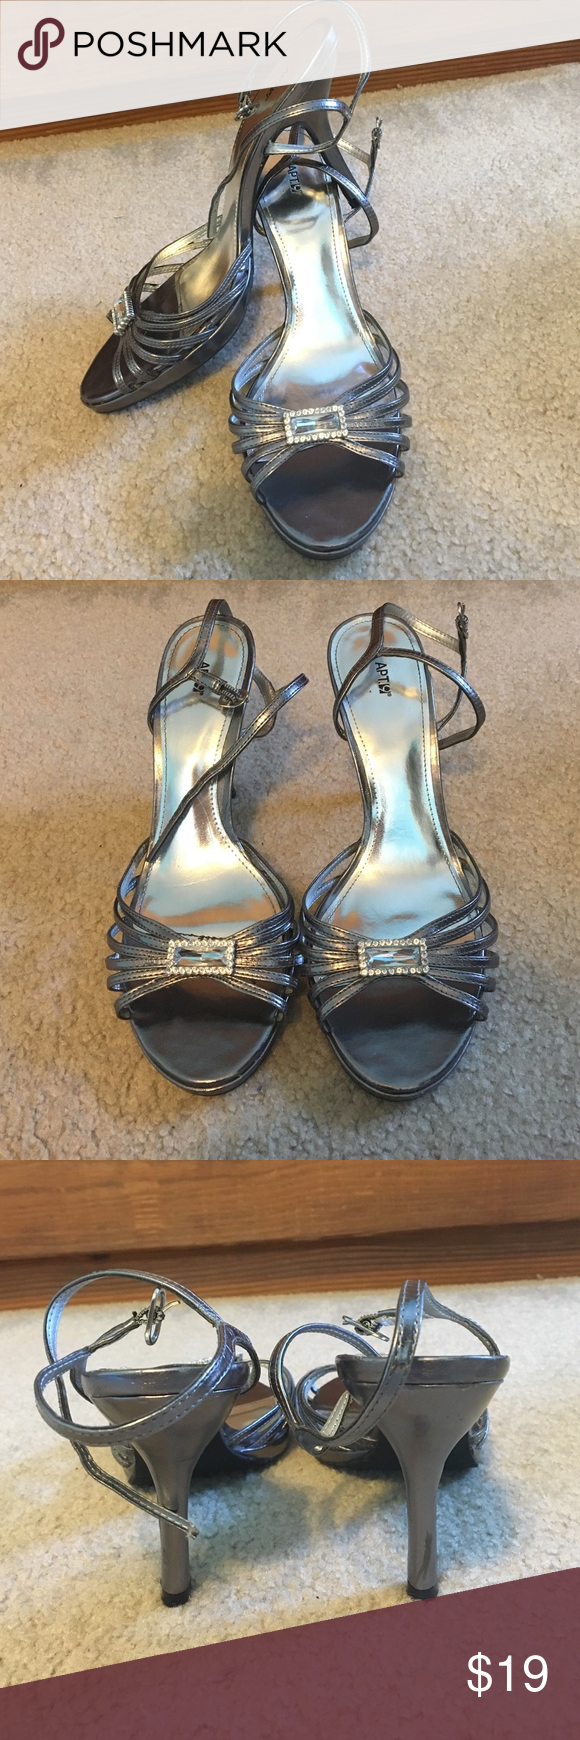 Apt. 9 Silver Heels Cute Silver Heels! From Apt. 9! Wore for homecoming twice! No trades! Apt. 9 Shoes Heels